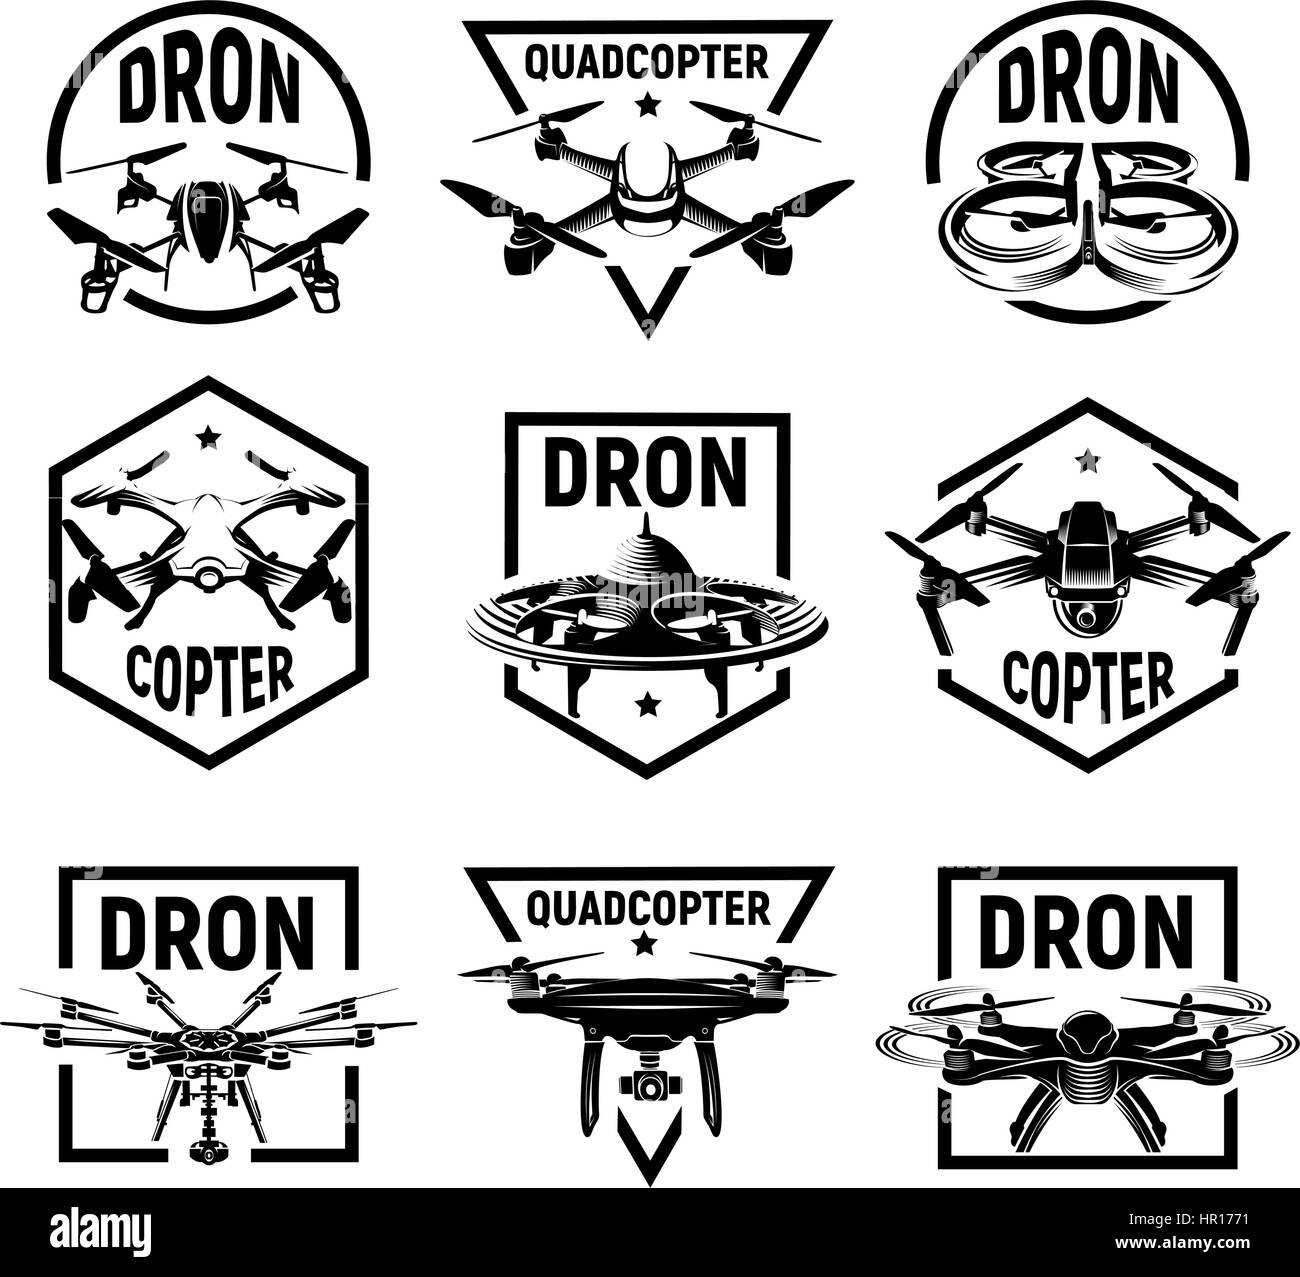 Isolated monochrome quadcopter icons in frames, rc drone logos Stock ...